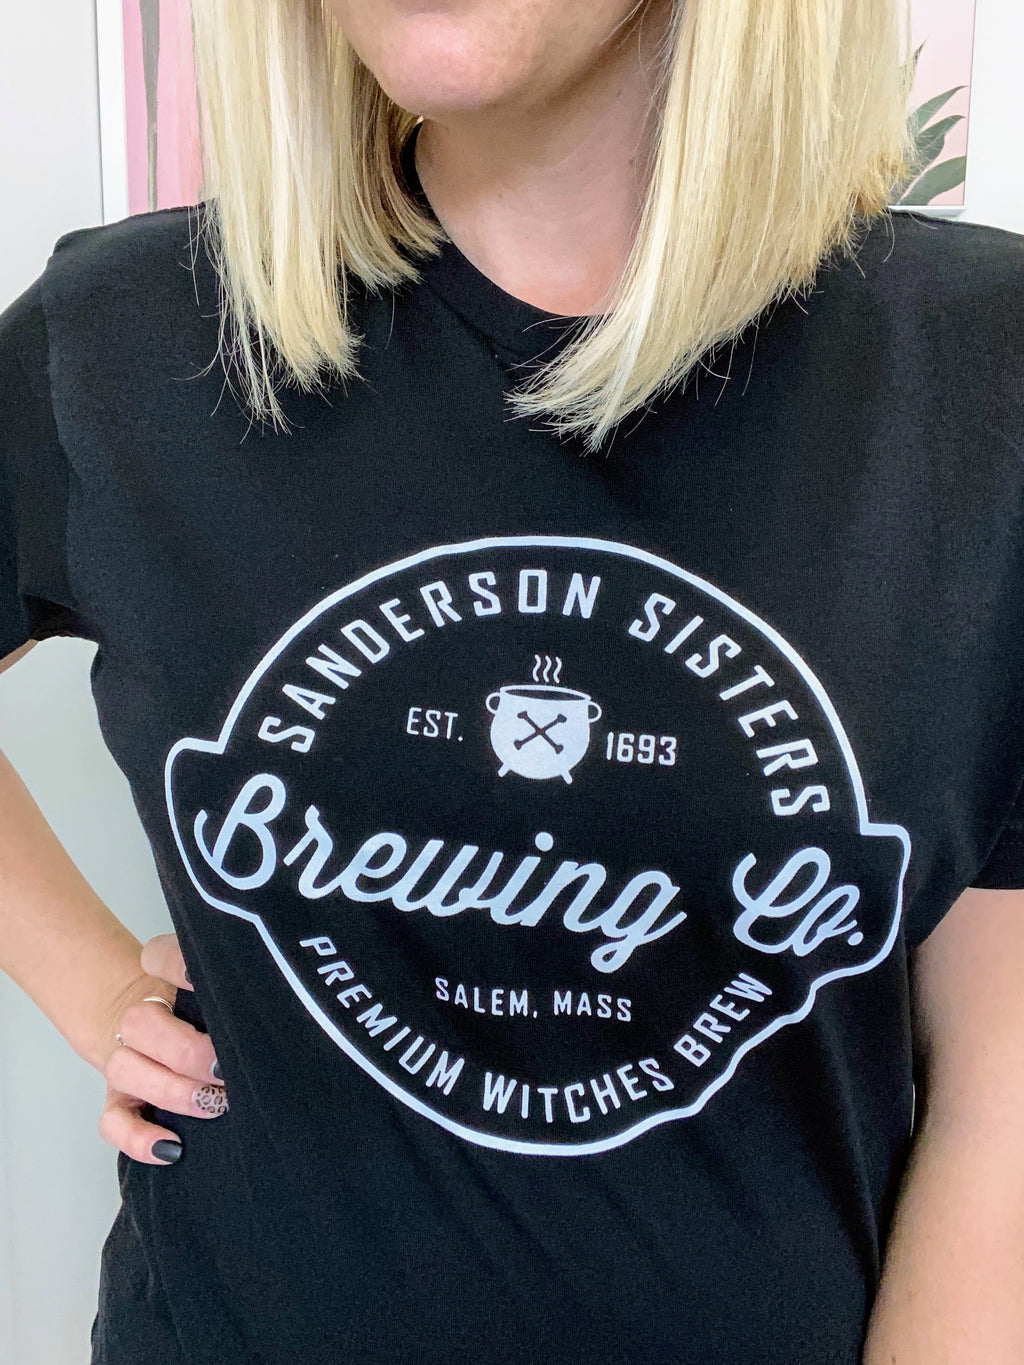 Sanderson Sisters Brewing Co. Graphic Tee